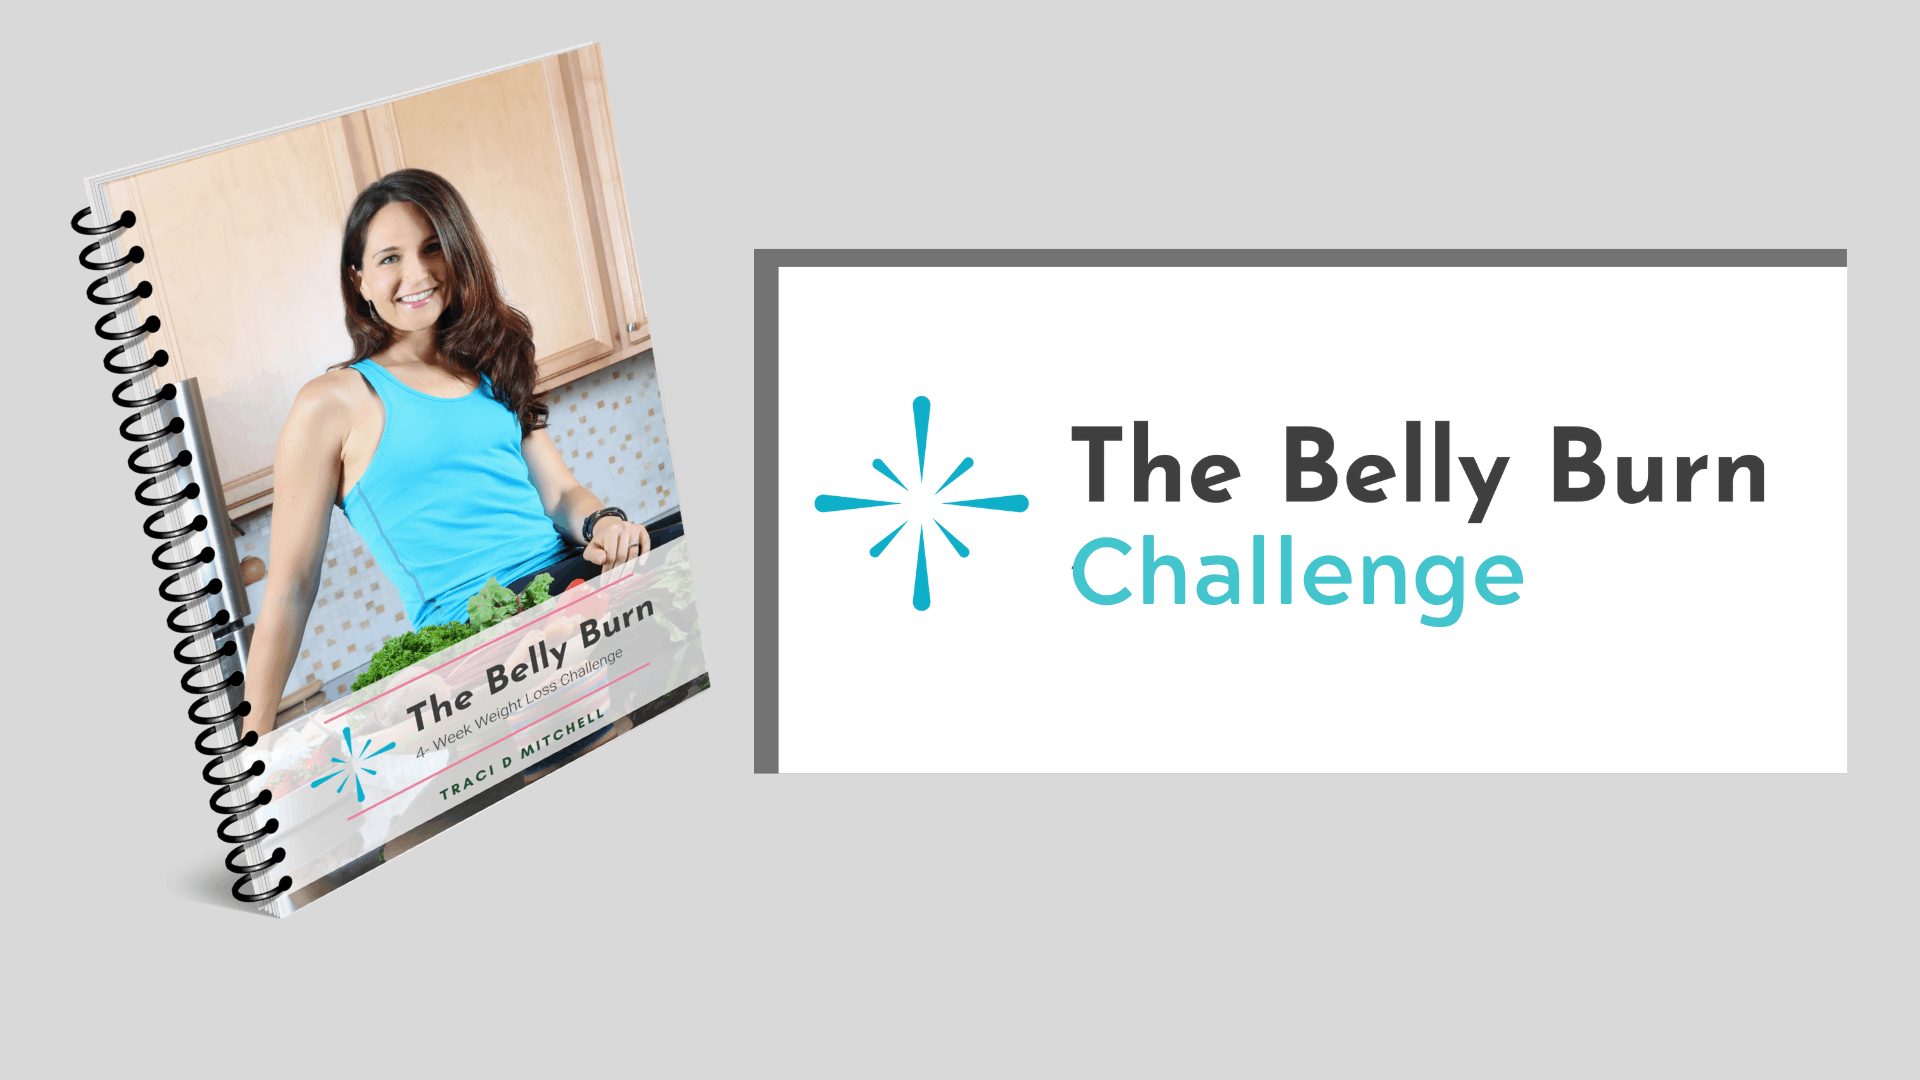 The Belly Burn Challenge